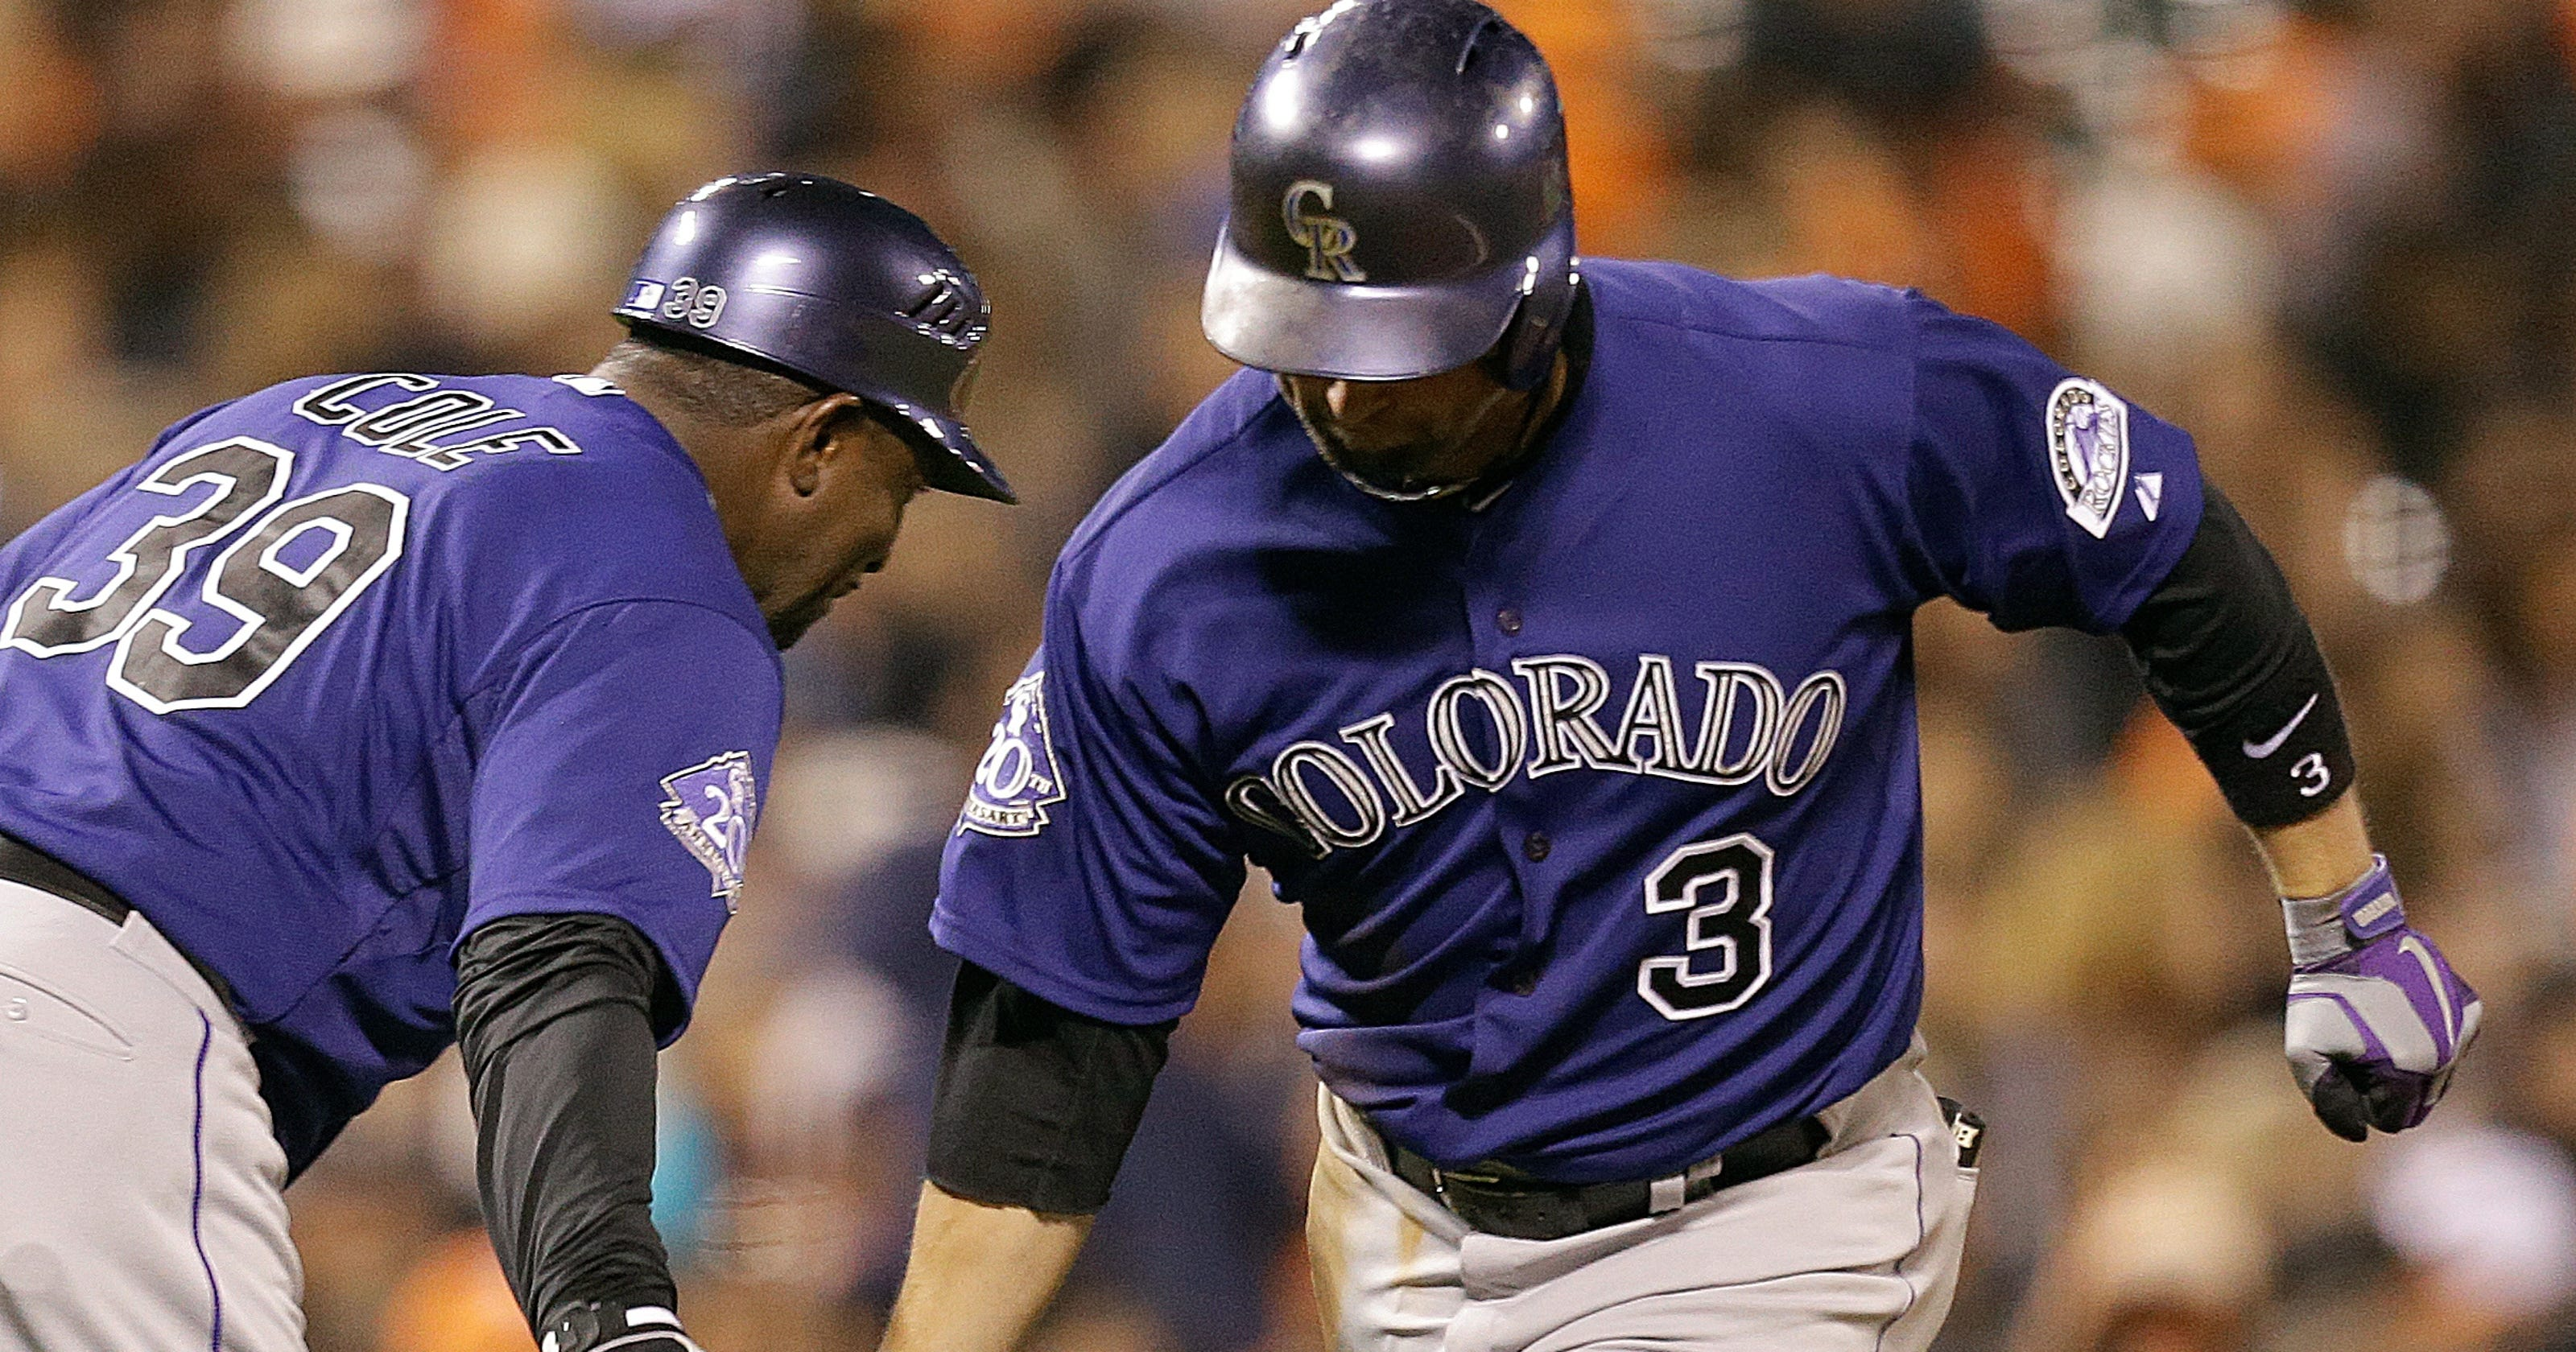 42bb4f39fed Michael Cuddyer returns from DL to lead Rockies by Giants